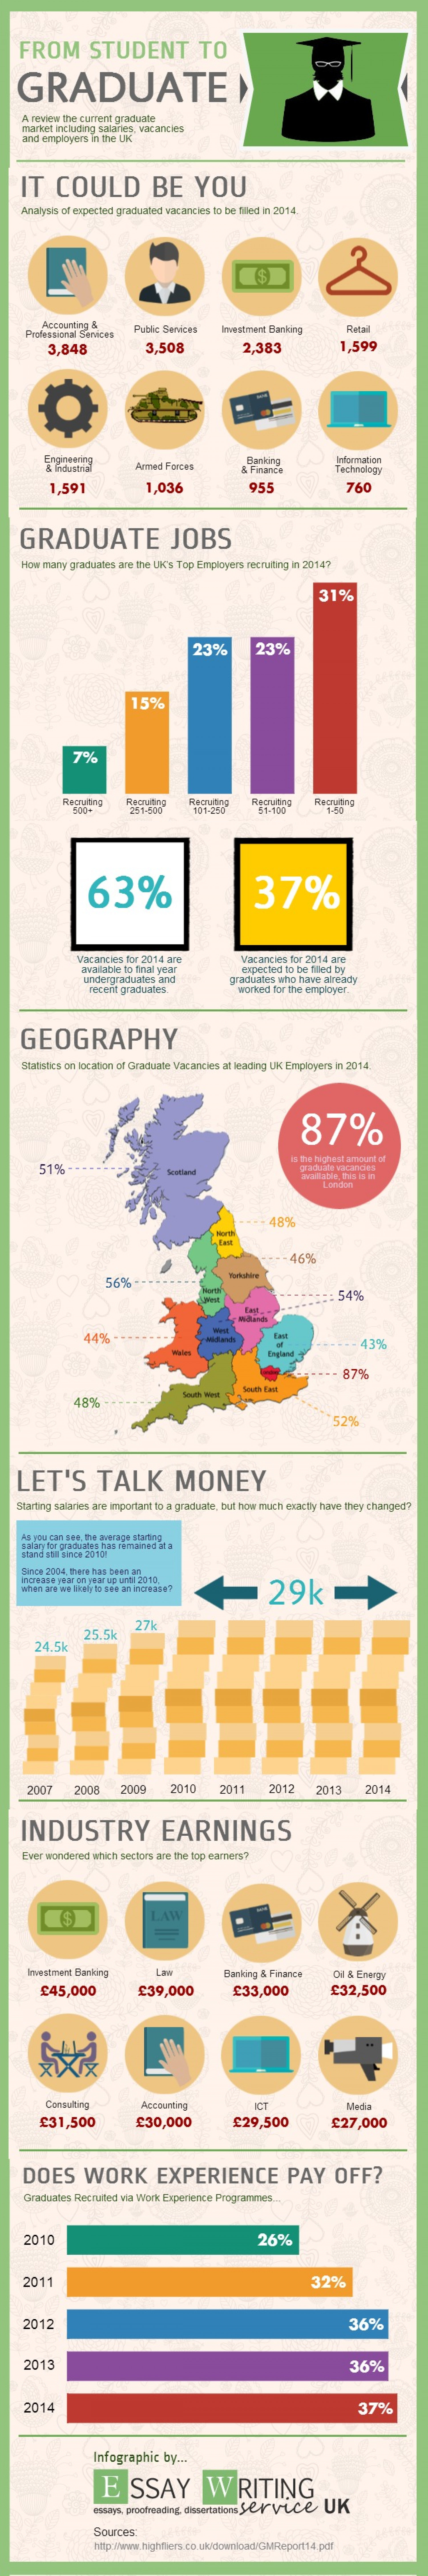 The Graduate Market 2014 Infographic